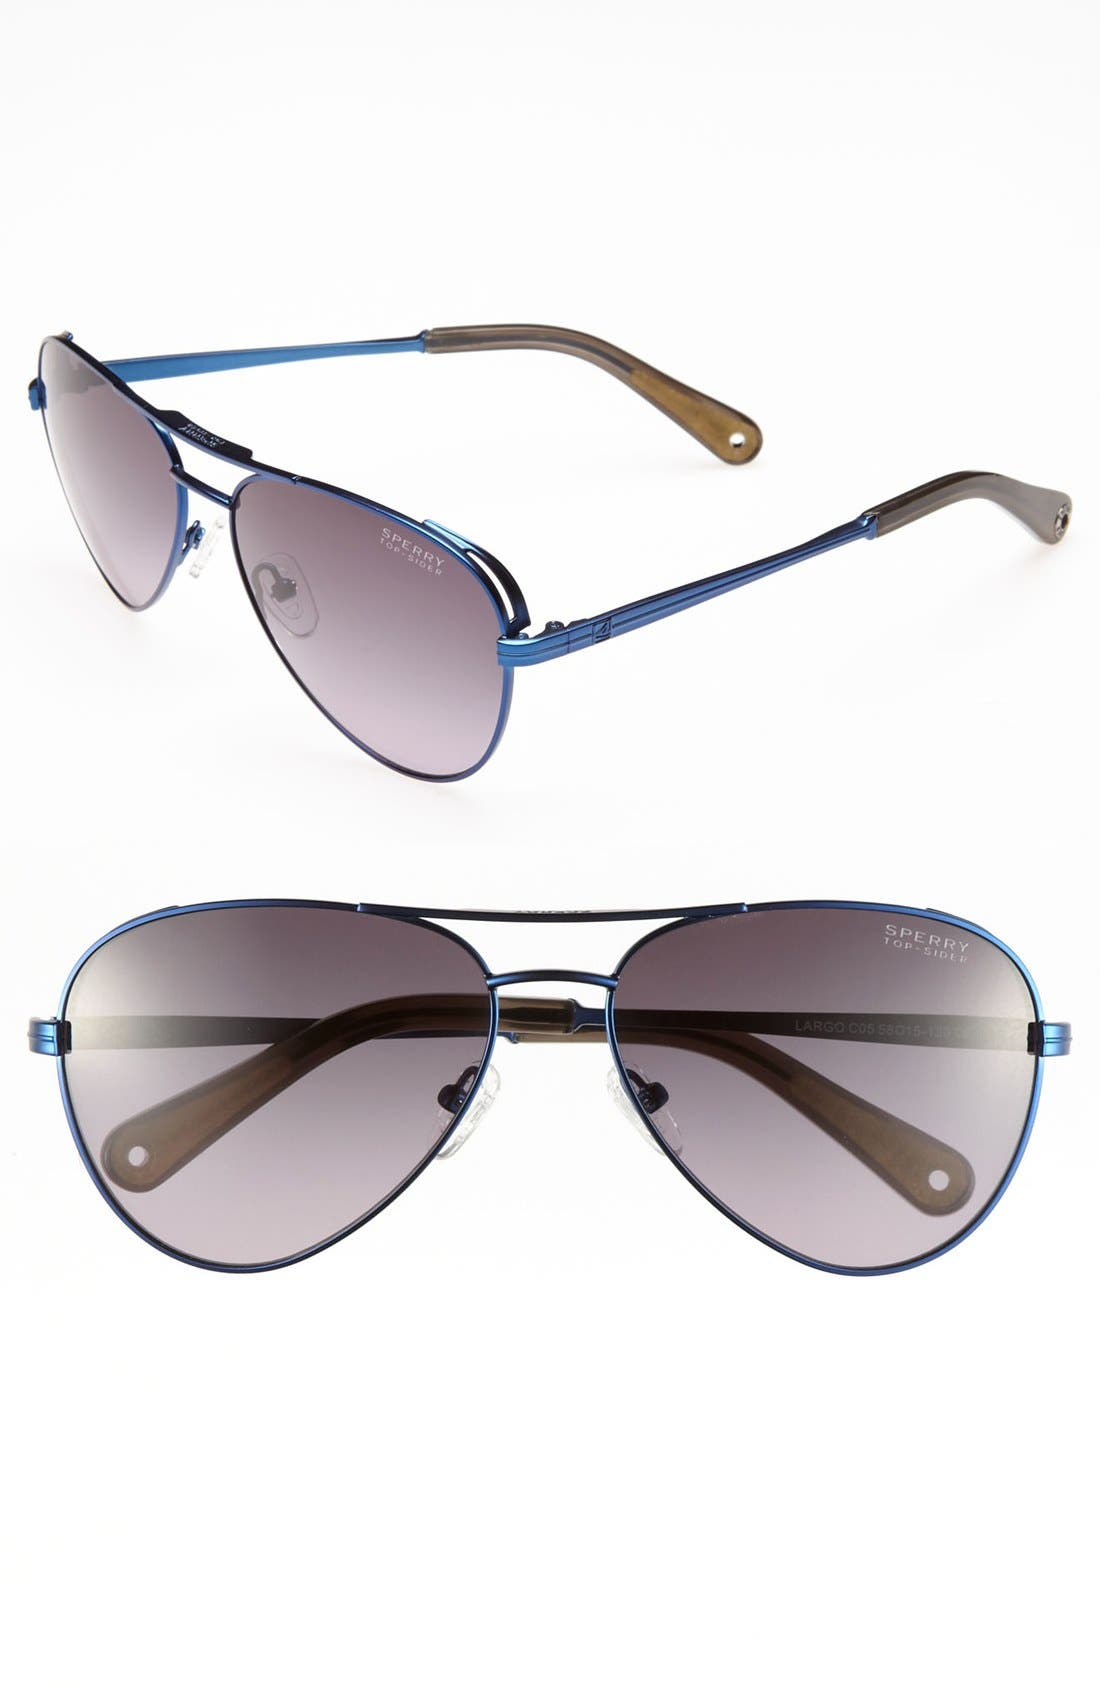 Alternate Image 1 Selected - Sperry Top-Sider® 'Largo' 58mm Aviator Sunglasses (Online Only)